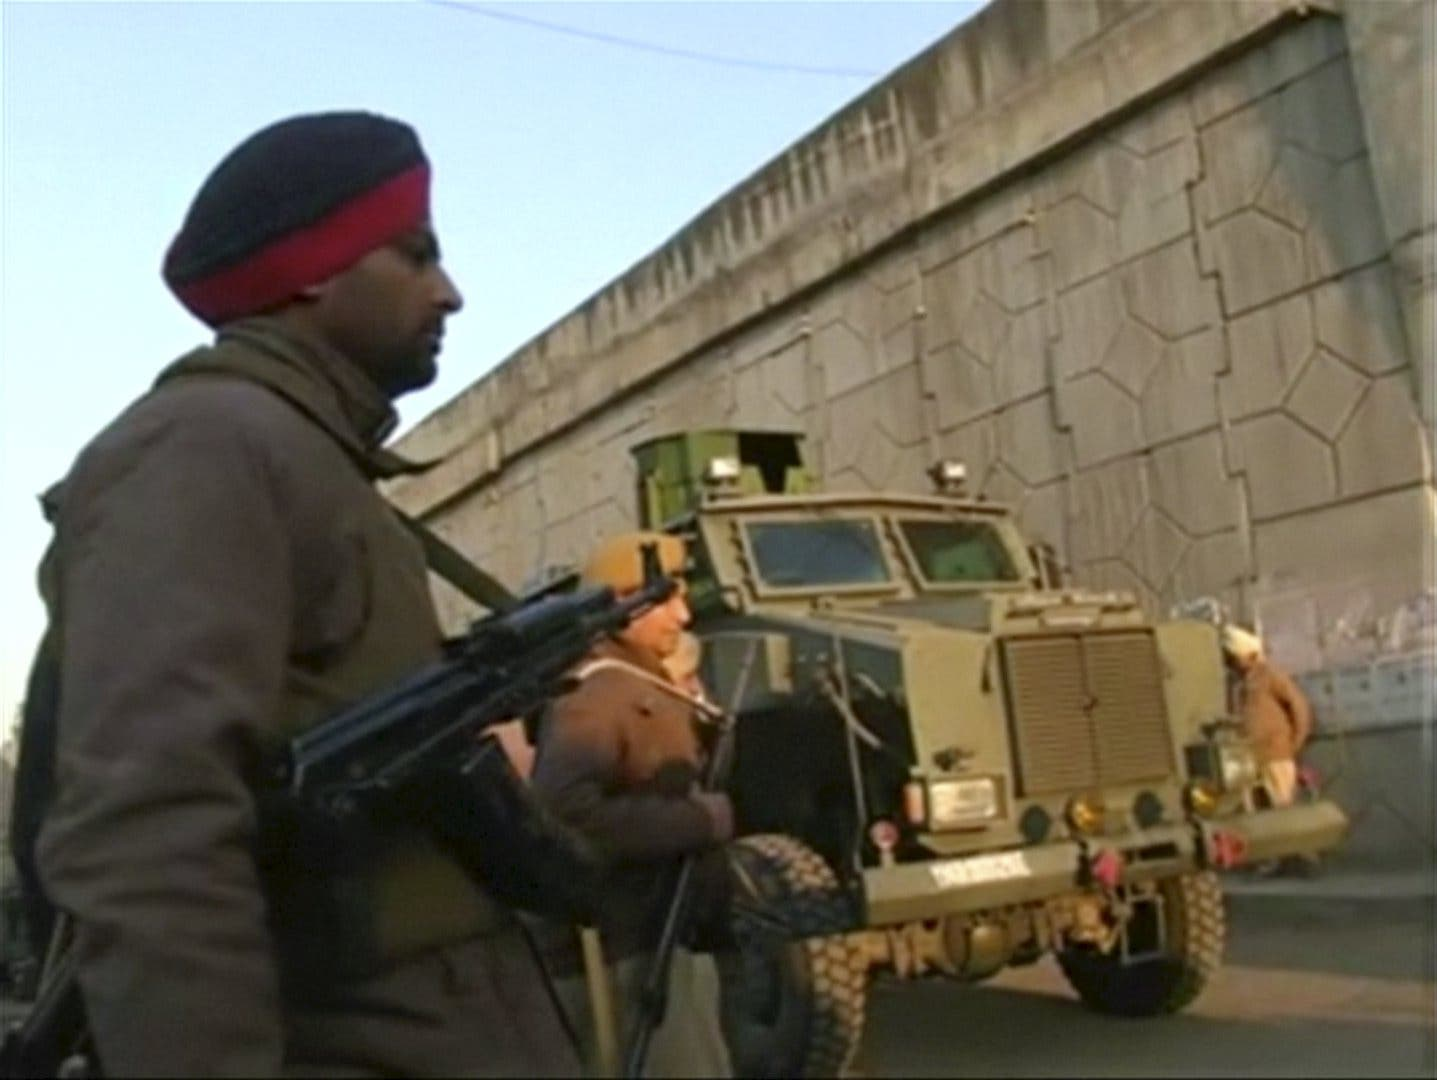 Police personnel stand guard following what officials said was an attack on an Indian Air Force base in Pathankot on Saturday near the border with Pakistan, in Pathankot, Punjab state, India, in this still frame taken from video, January 2, 2016. reuters